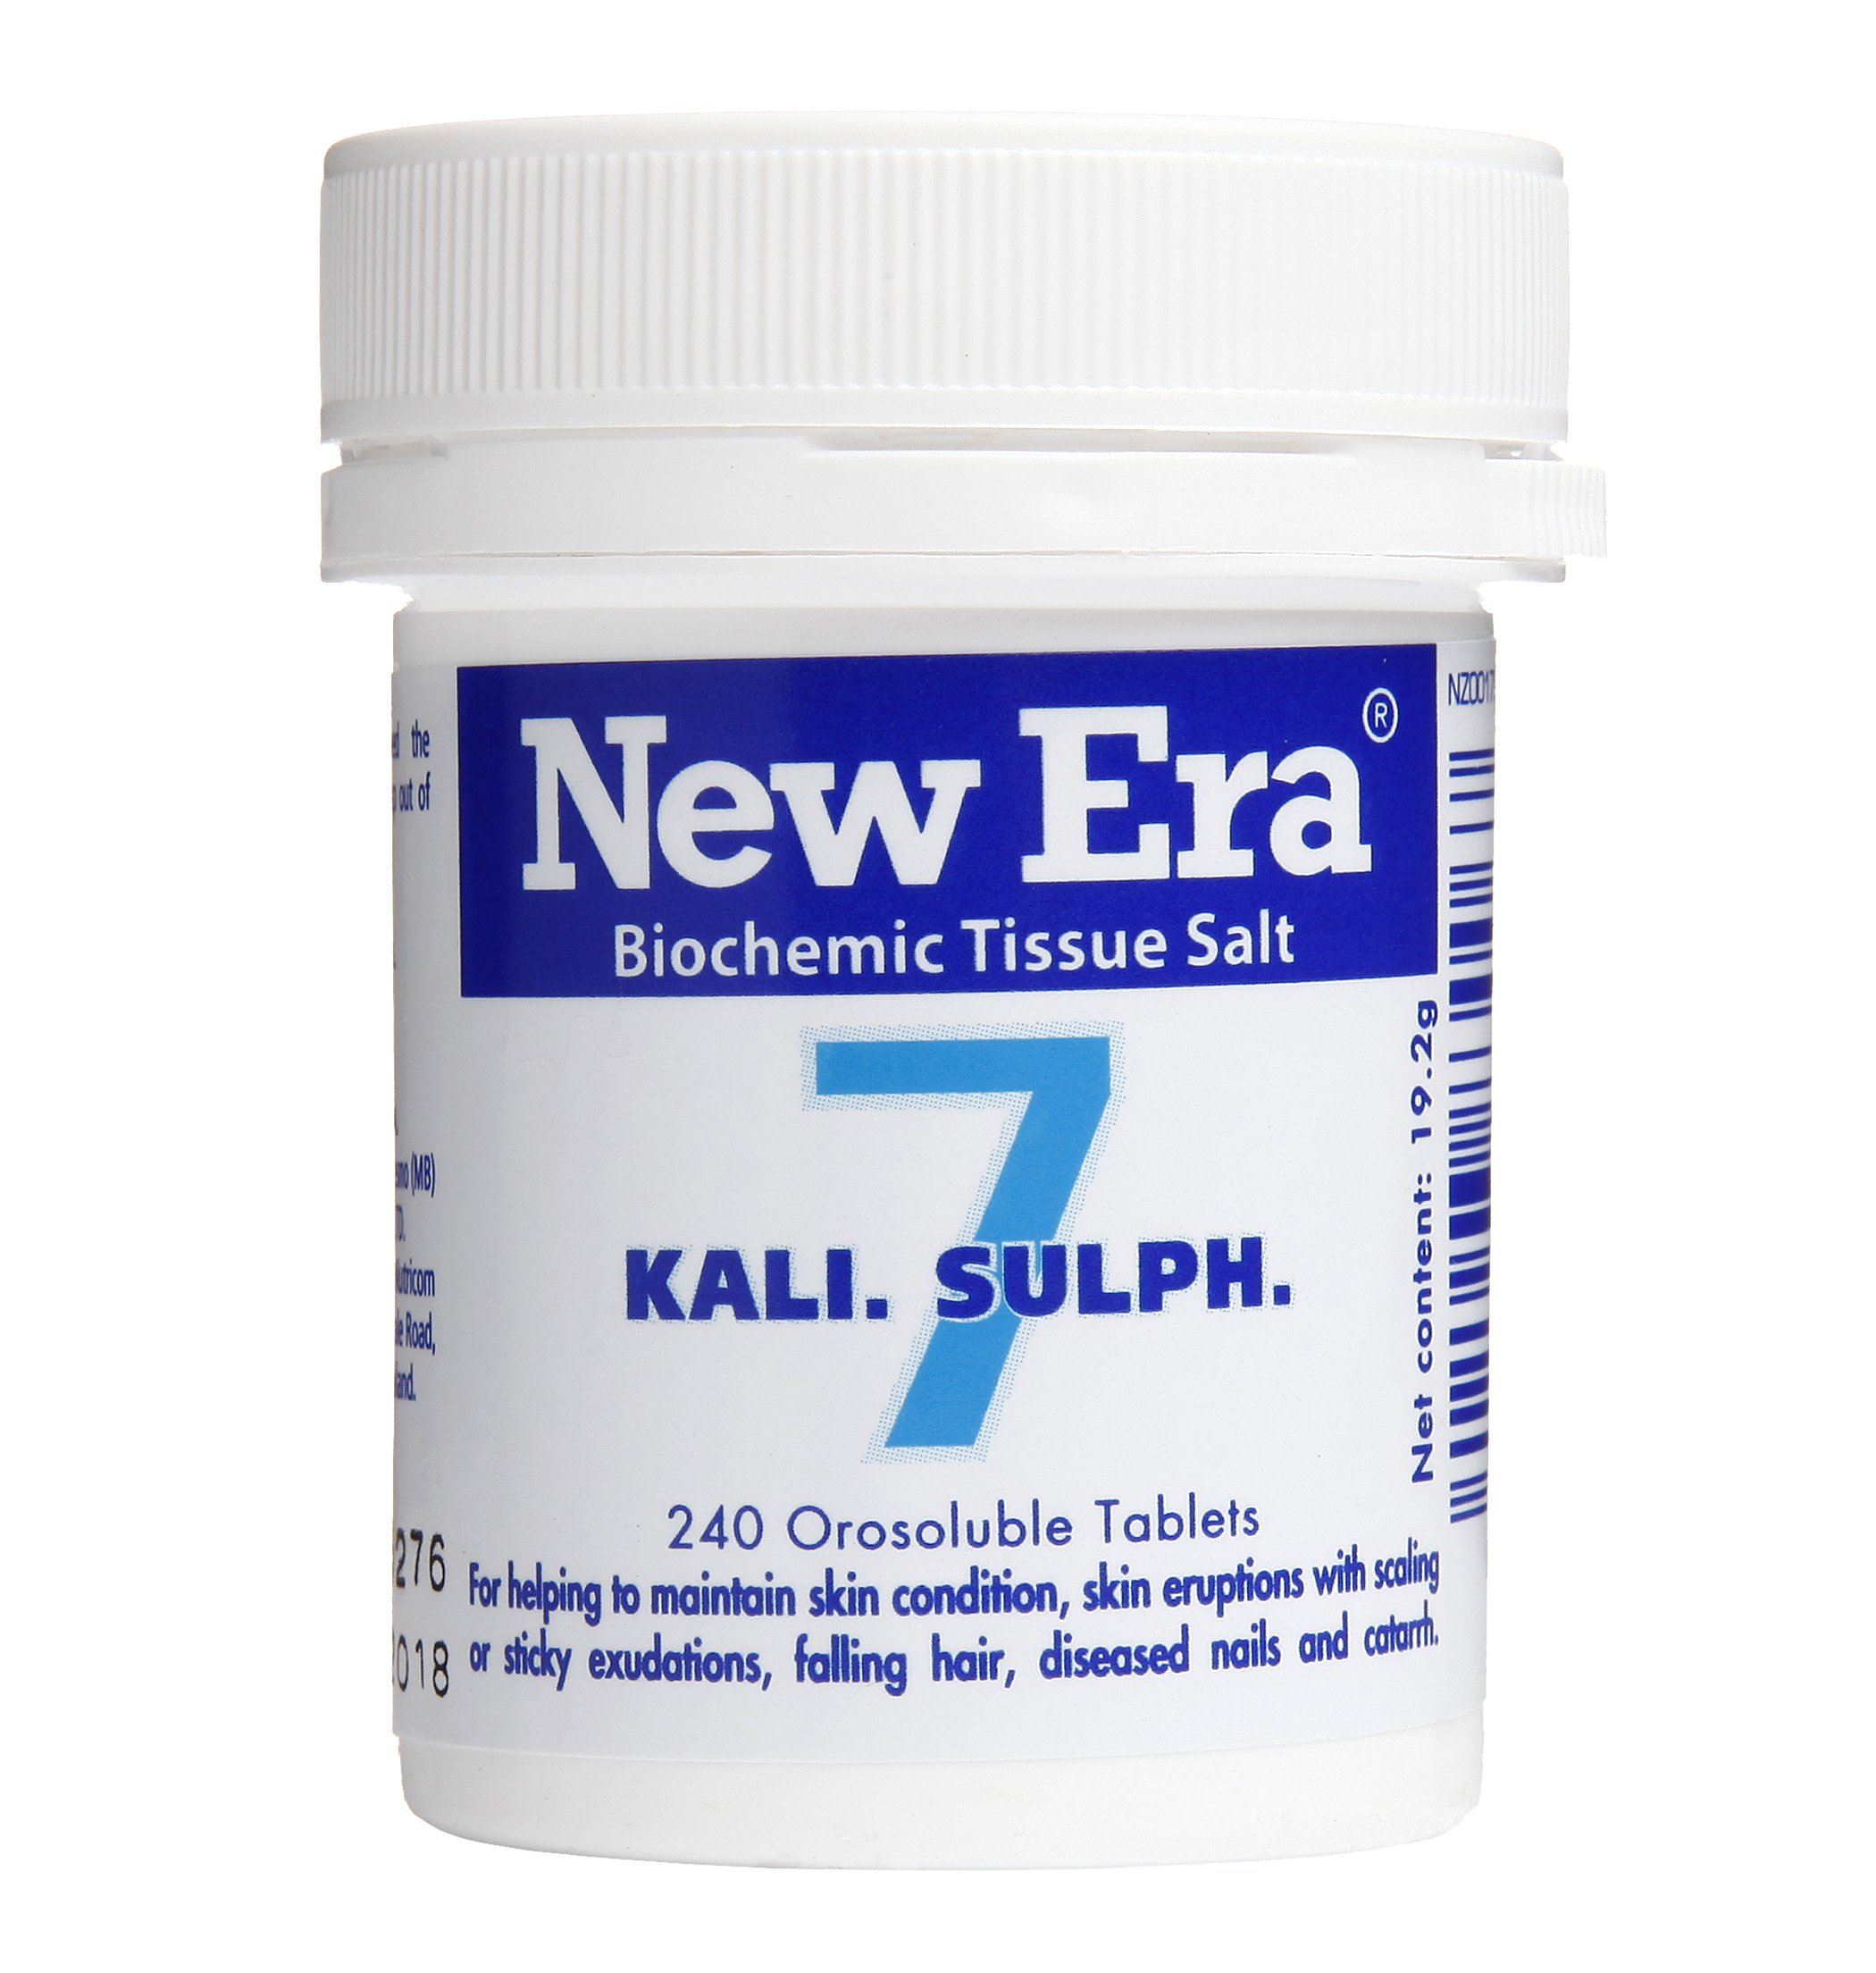 New Era No 7 Kali Sulph Mineral Cell Salt